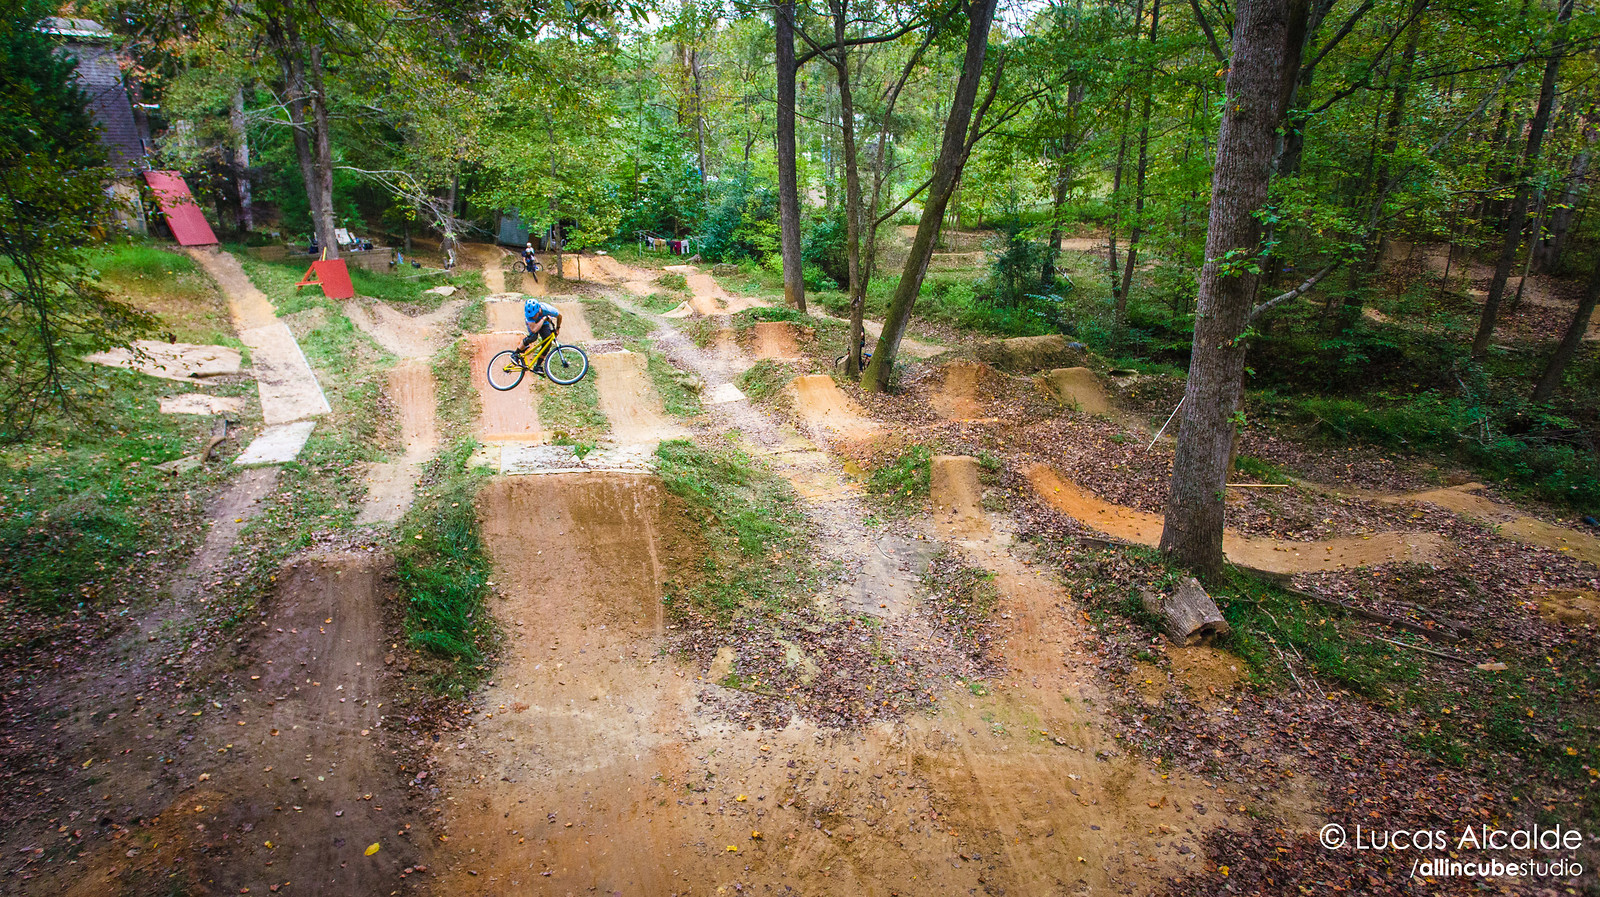 Brad's Backyard - a playground for bikers - Lucas_Alcalde - Mountain Biking Pictures - Vital MTB